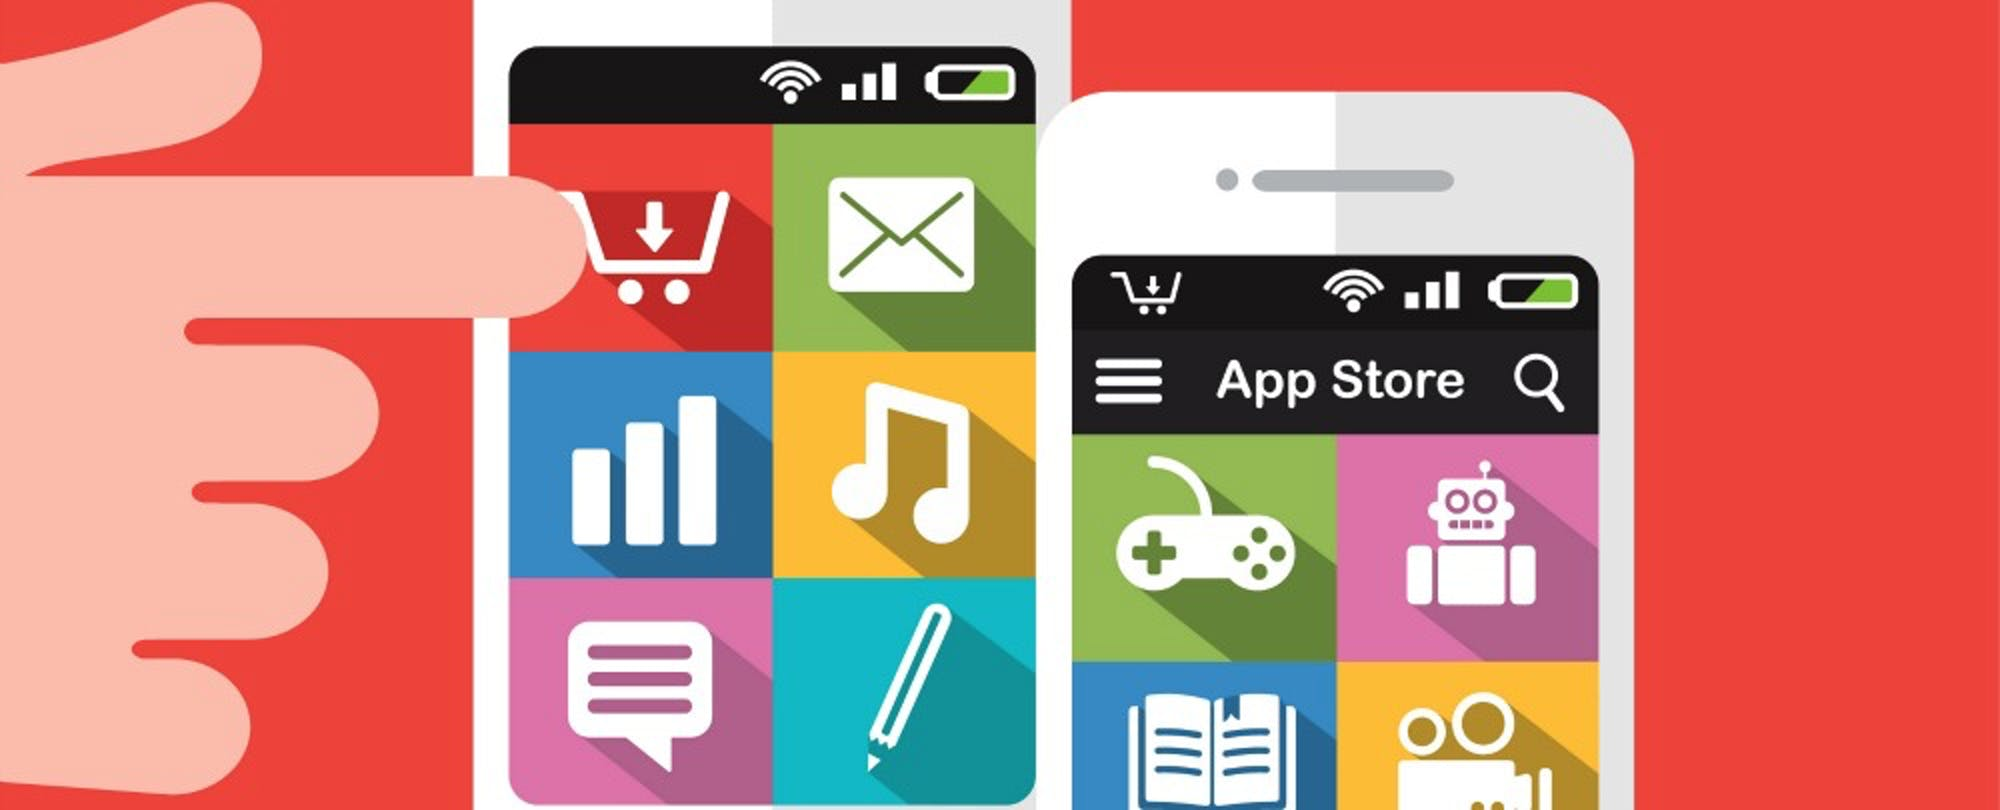 UNC Launches 'App Store' for Digital Learning Tools